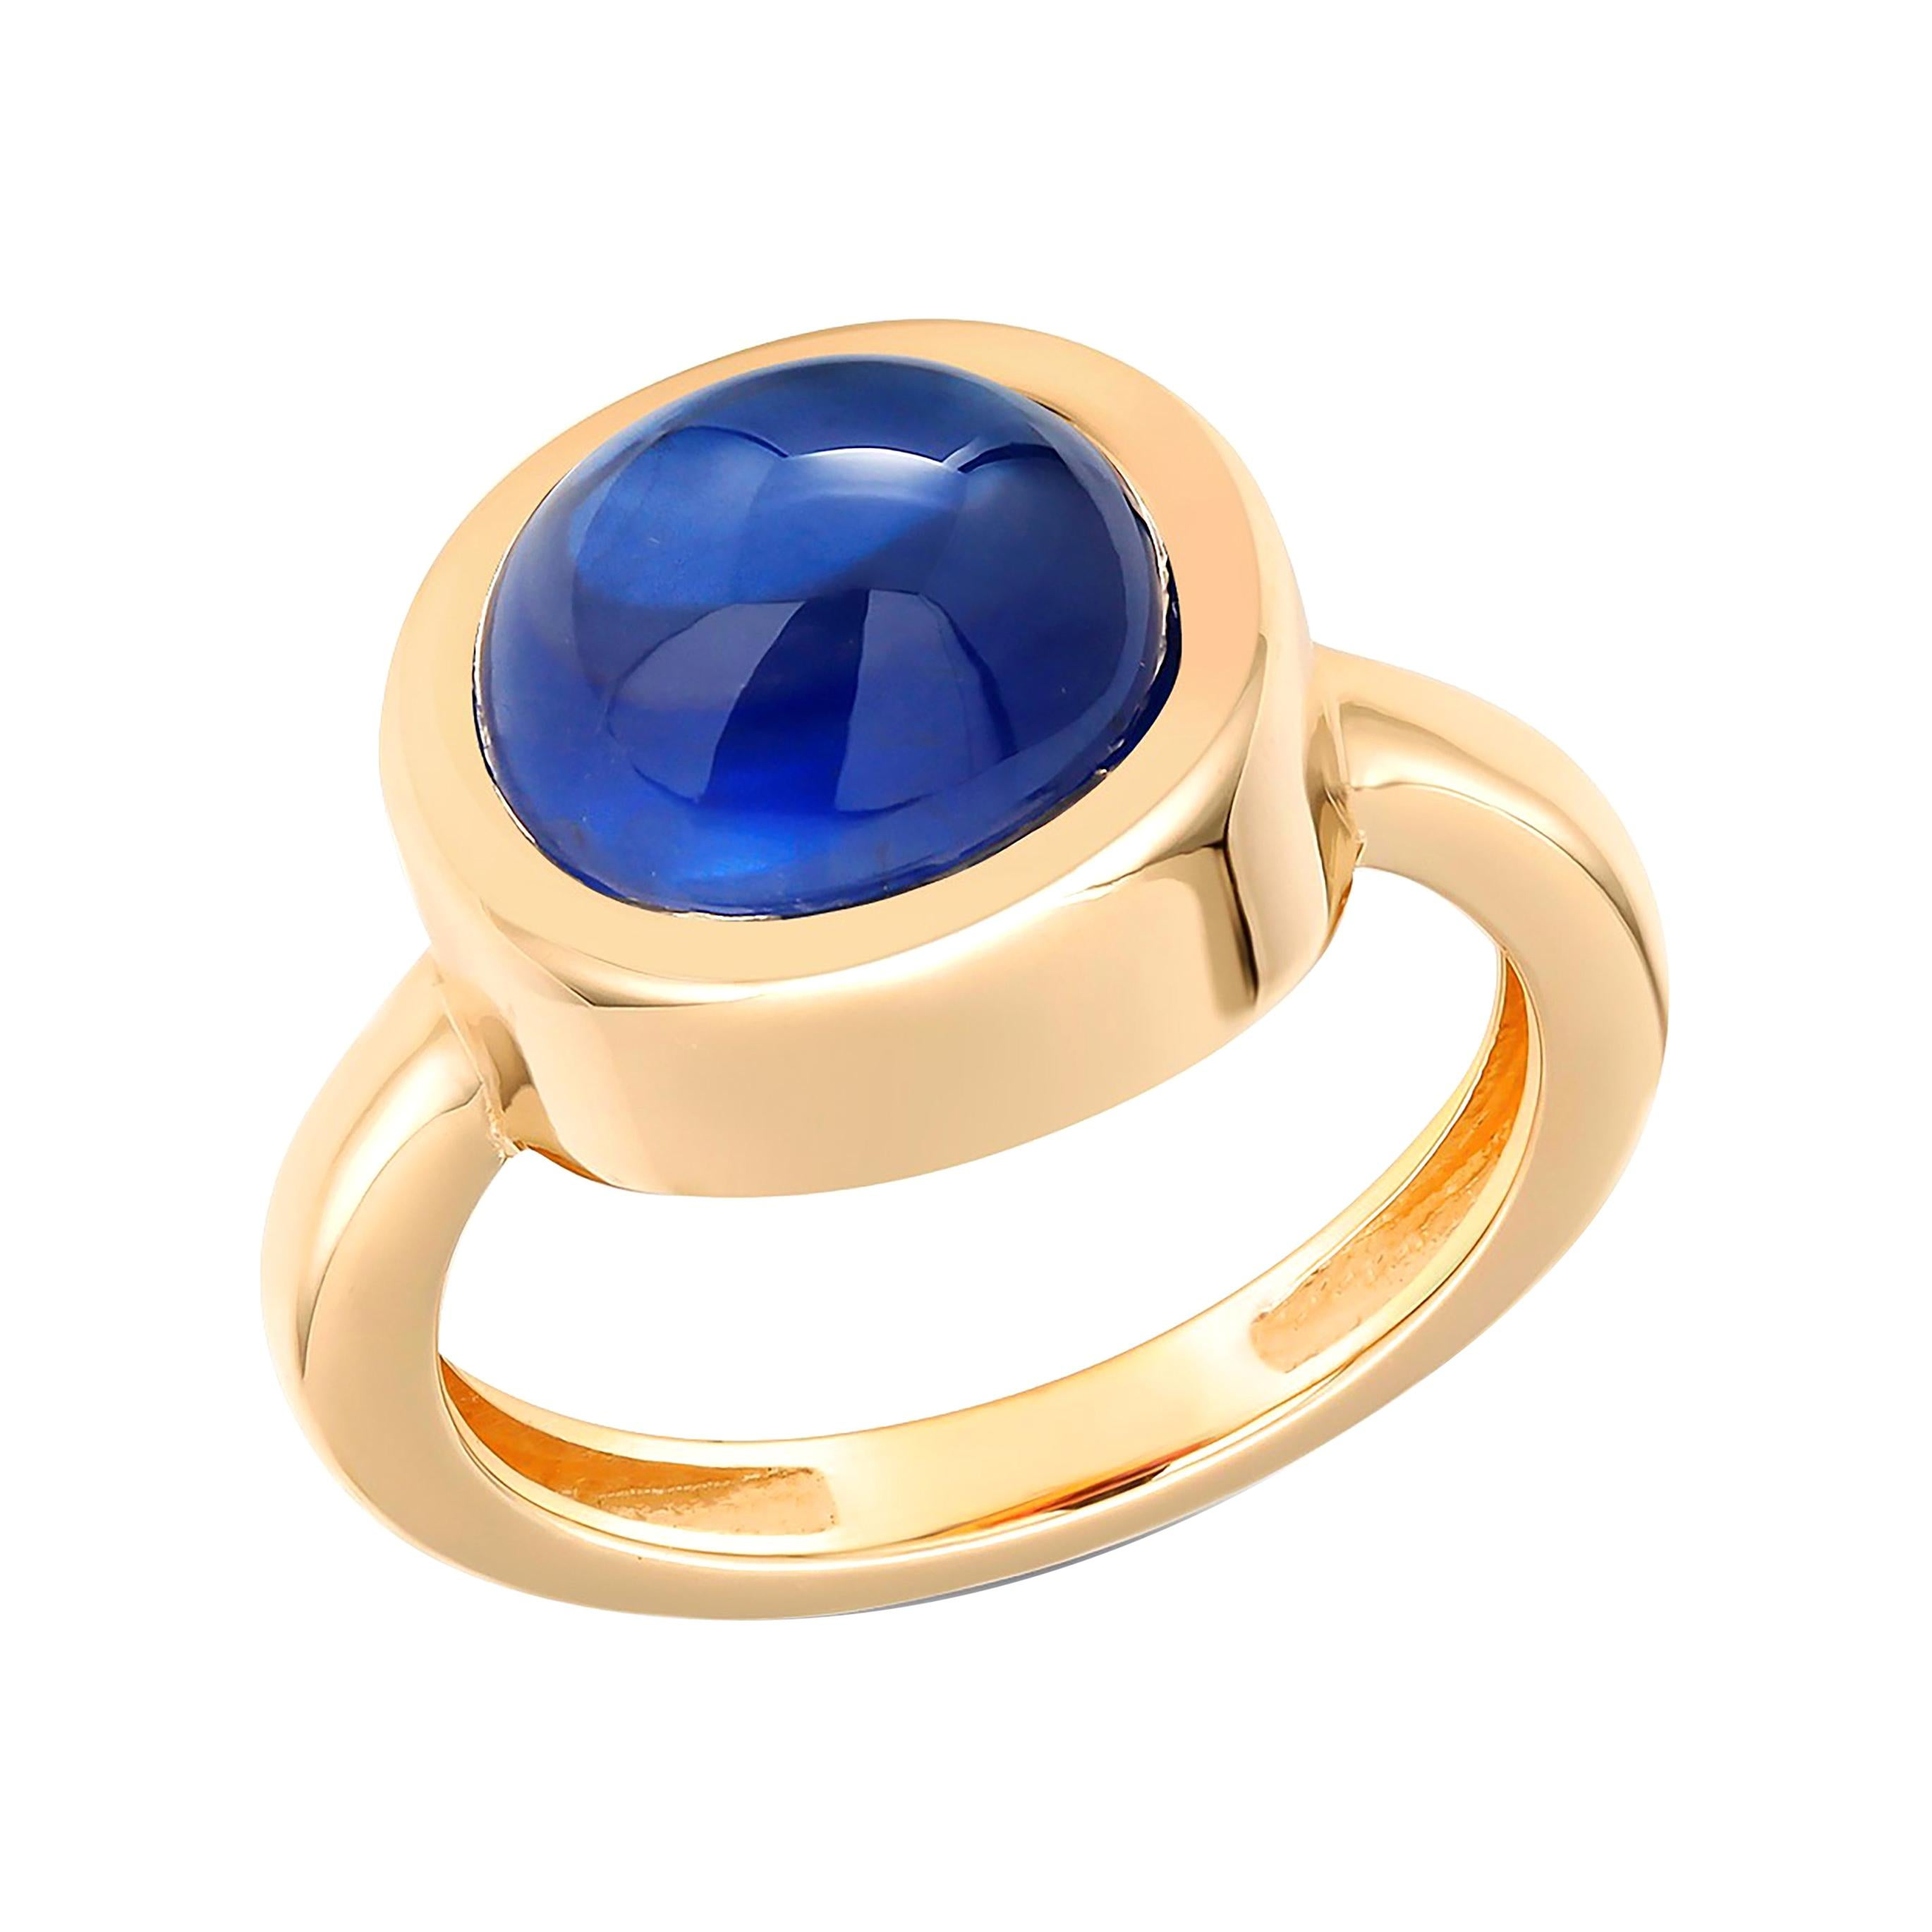 Cabochon Sapphire Bezel Raised Dome Yellow Gold Cocktail Ring